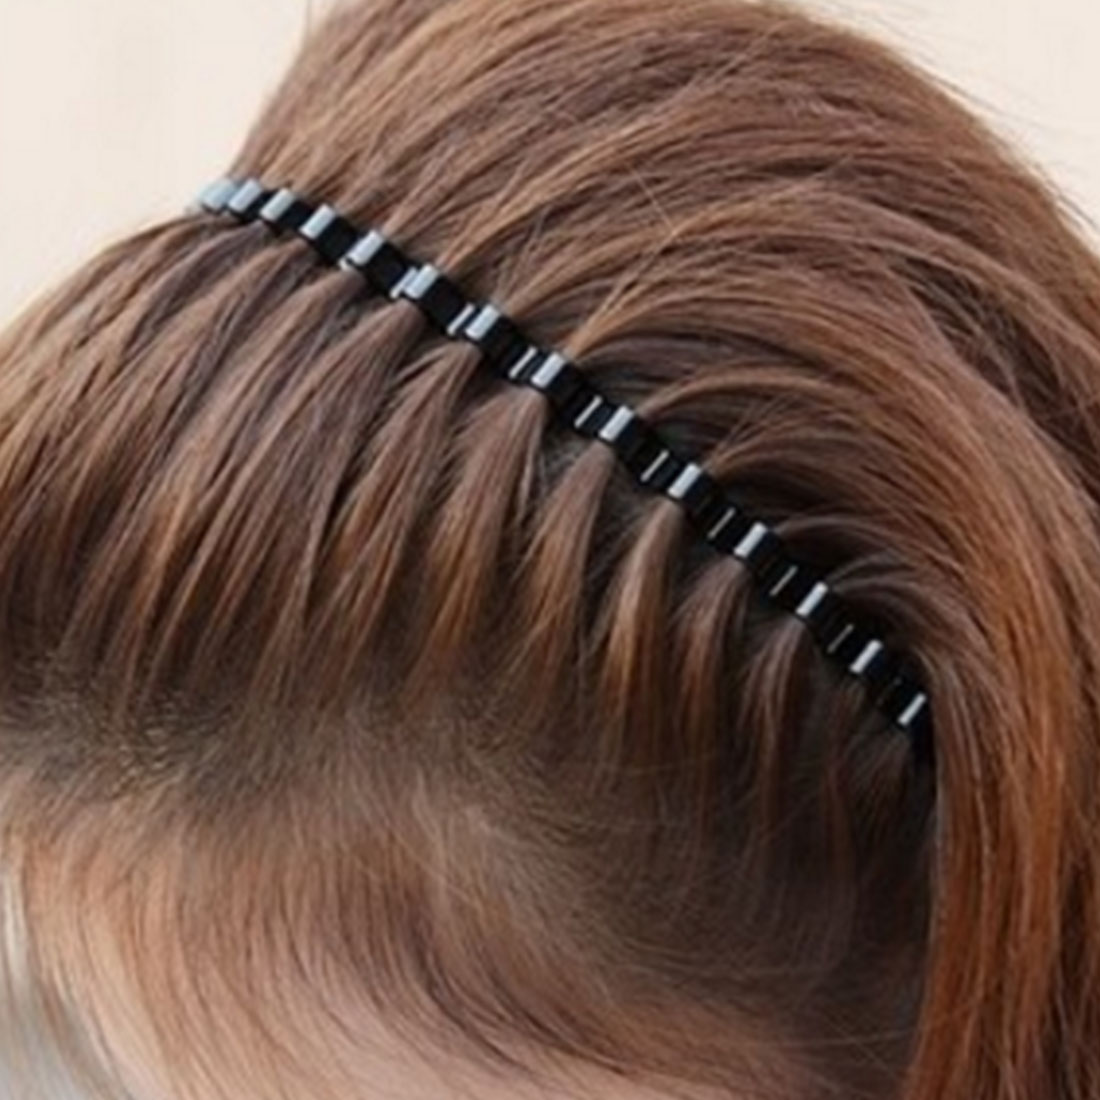 Hot 1PC Mens Women Styling Tools Unisex Black Simple Wavy Hair Head Hoop Band Sport Headband Hairband Hair accessories